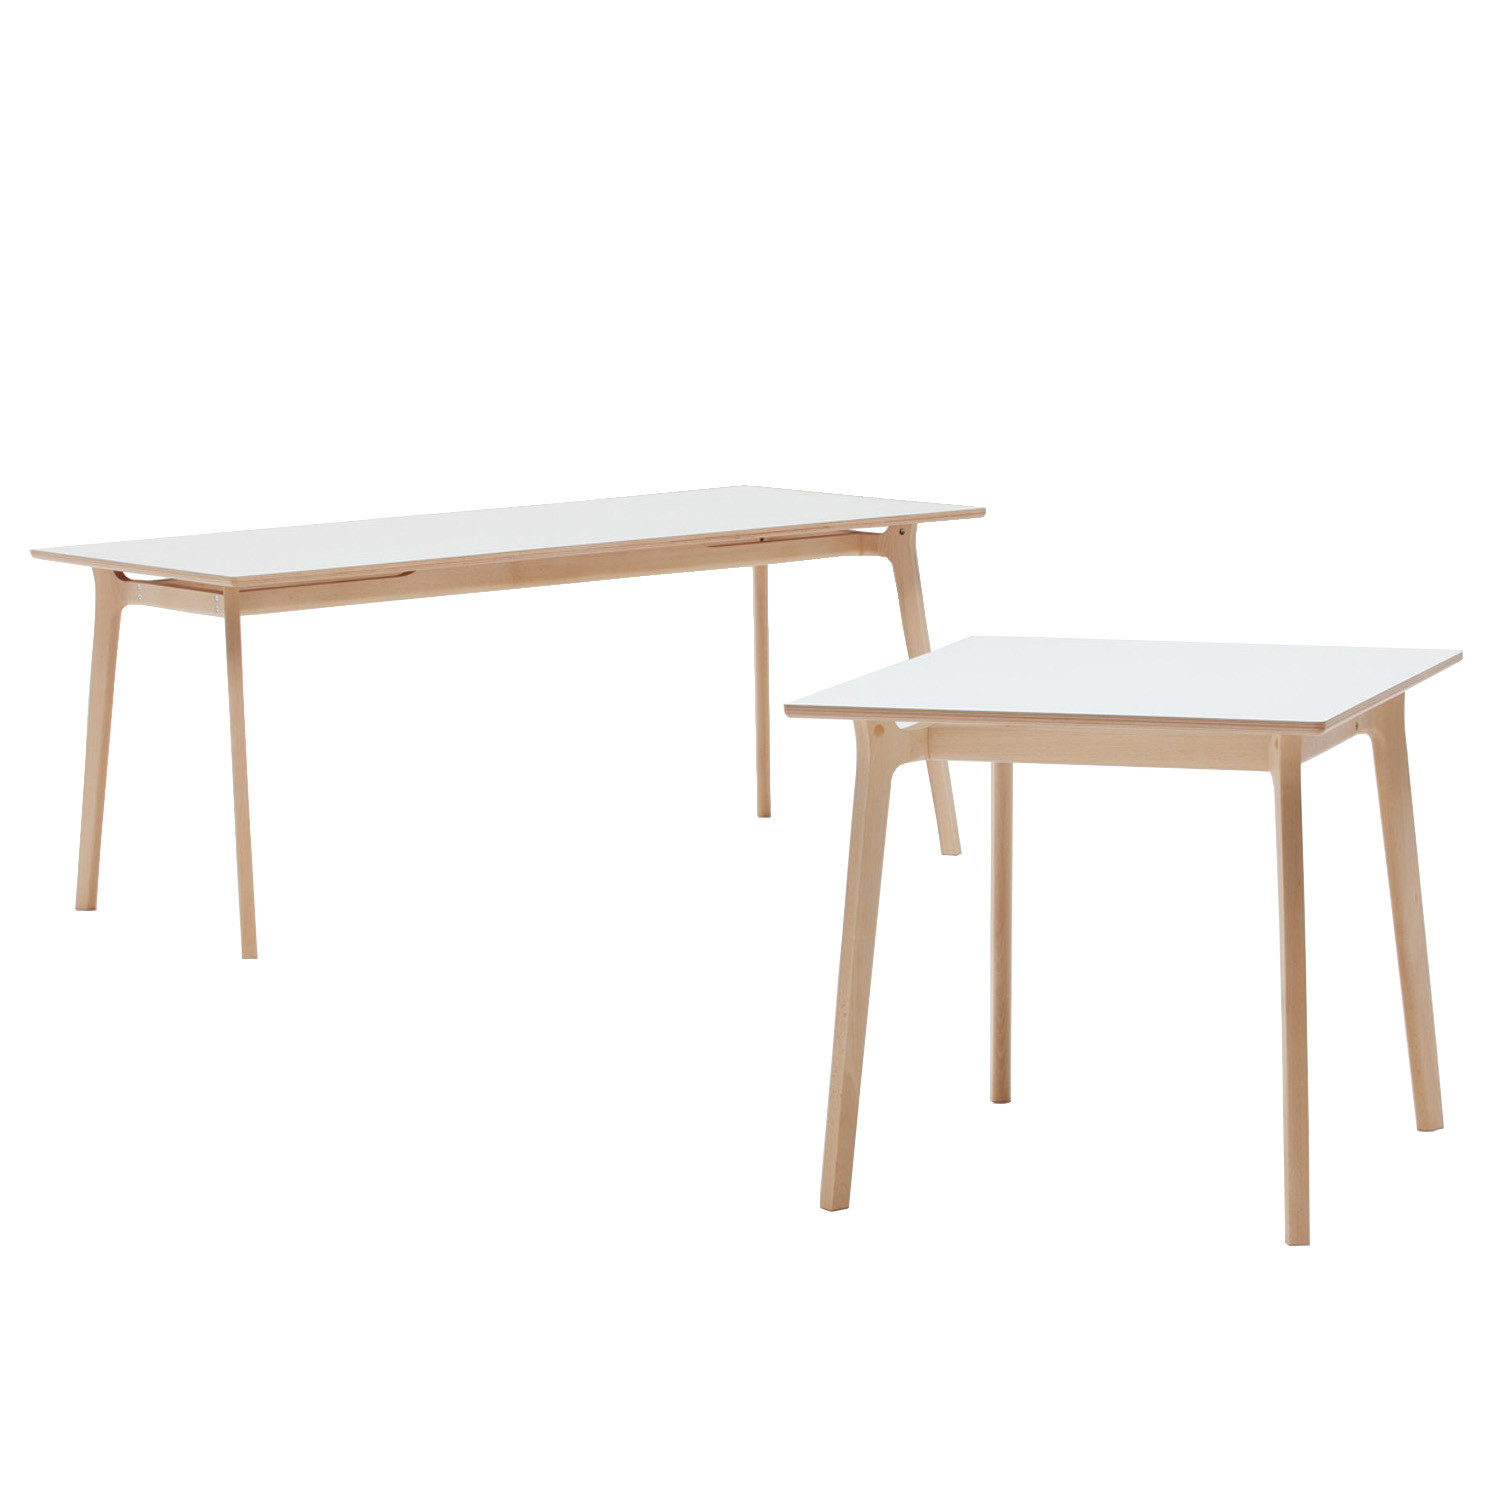 Jonty Cafe and Dining Tables